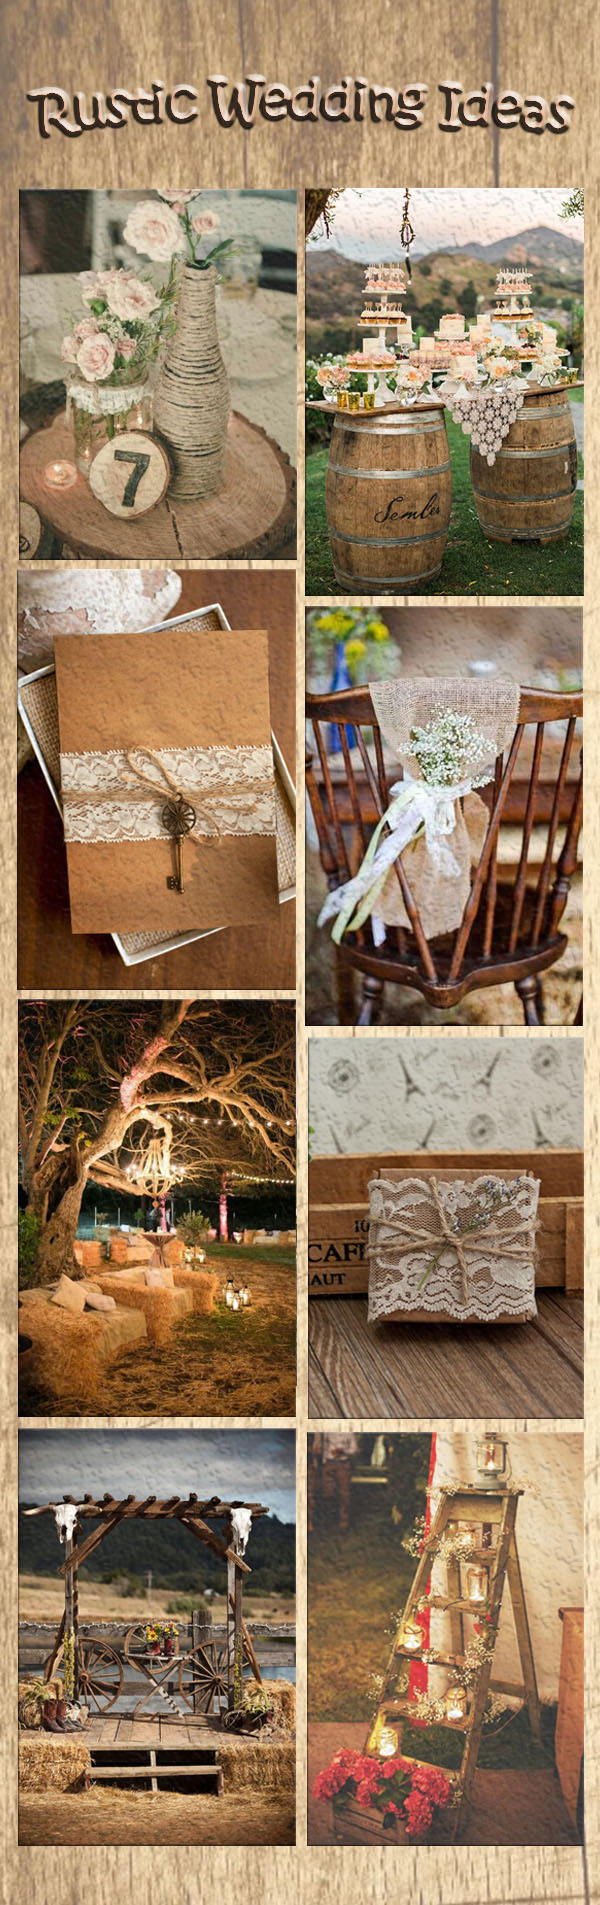 popular rustic wedding ideas and EWI rustic wedding invitations